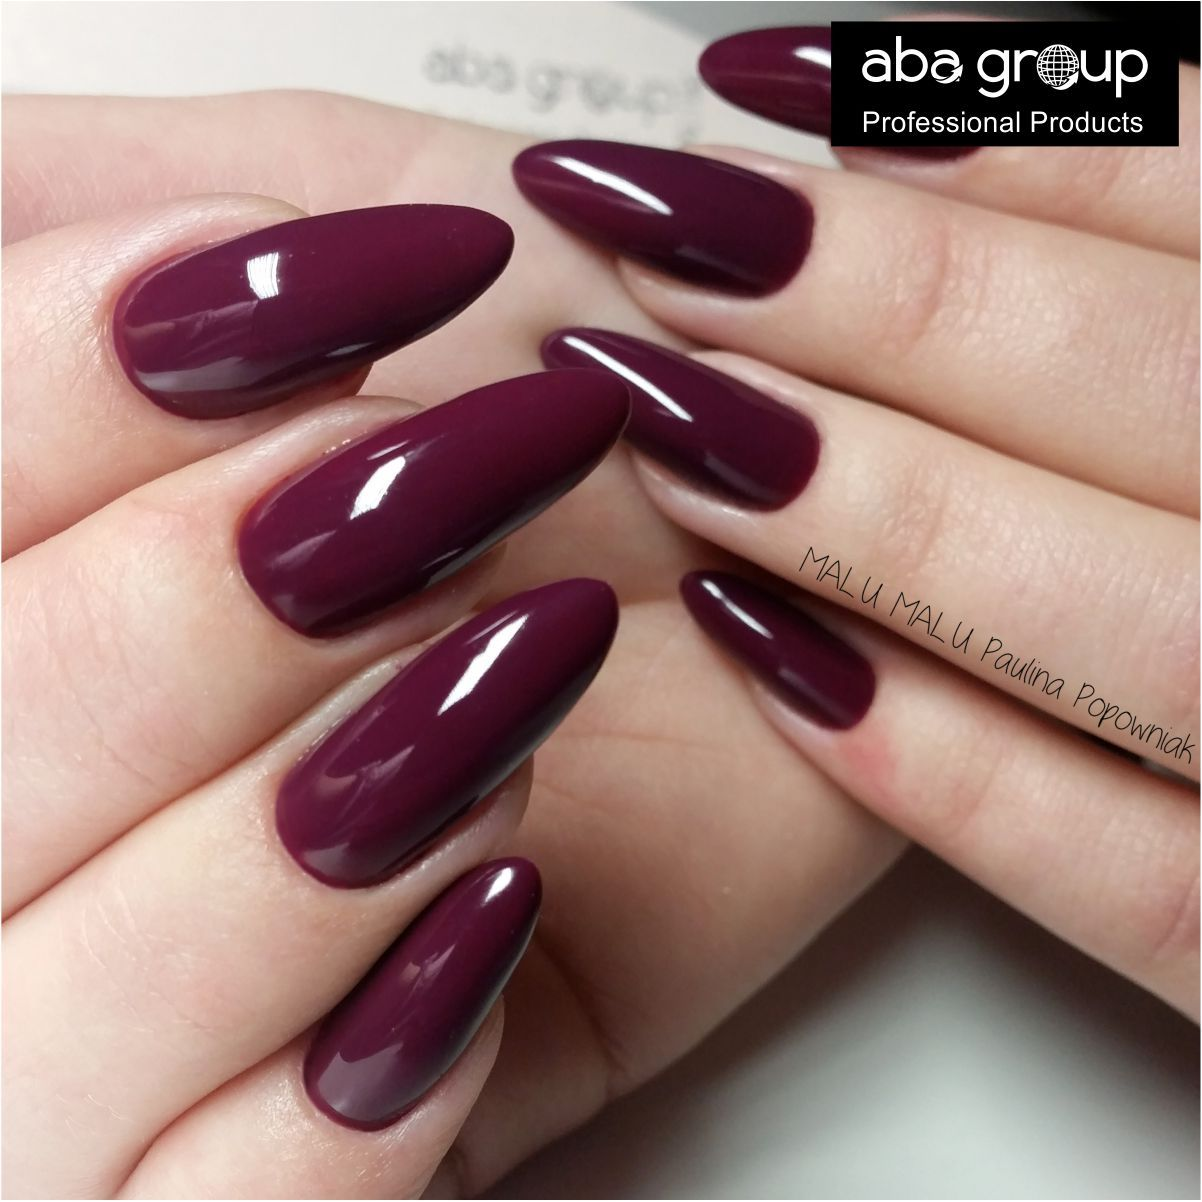 Pin On Ideas For A Nails Abagroup